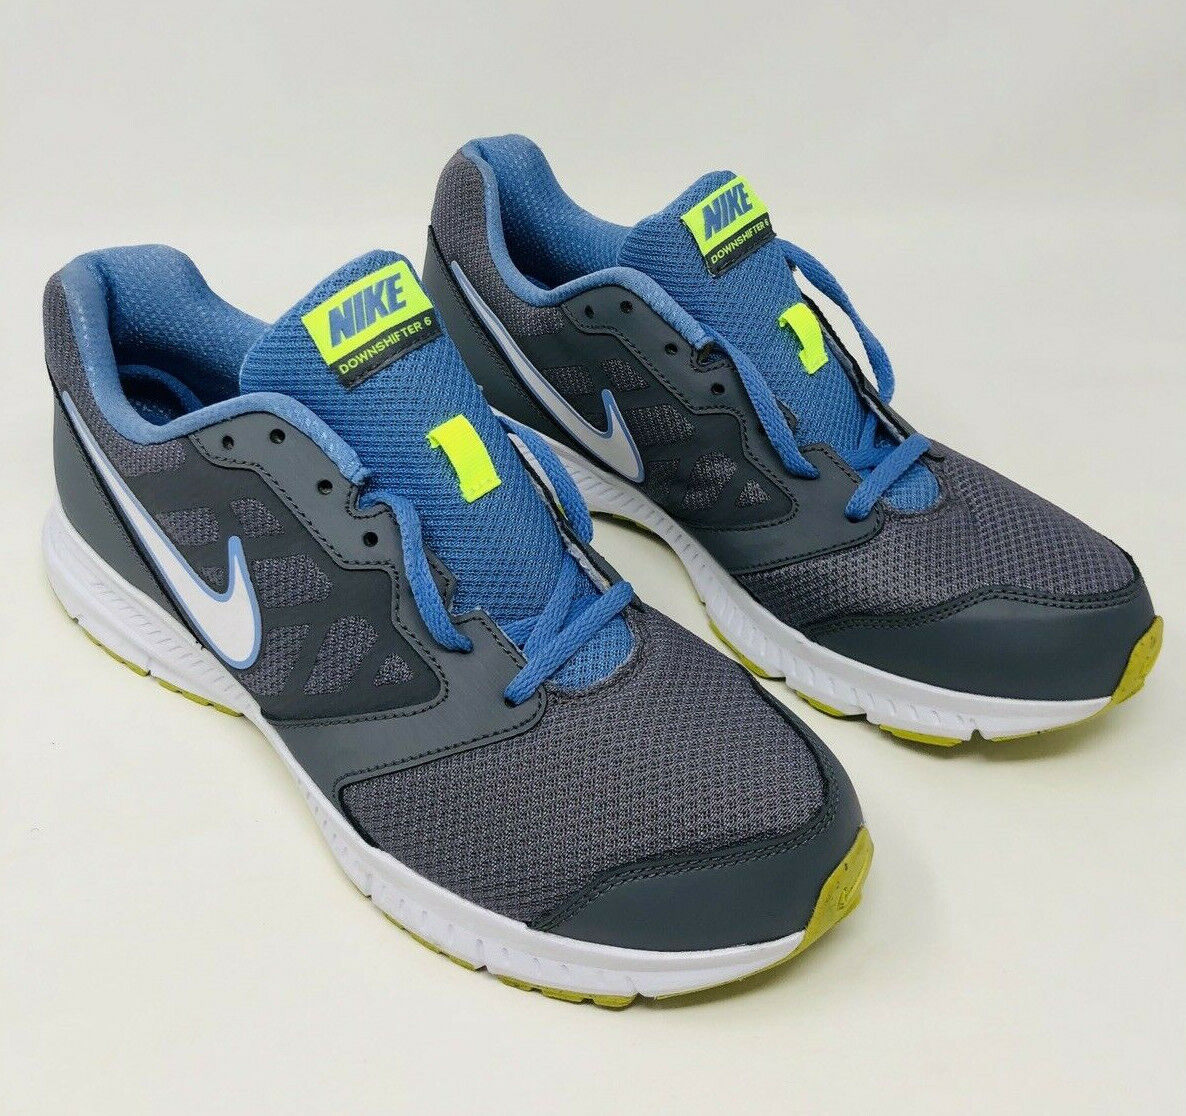 New Nike Women's Size 11 Downshifter 6 Running Shoes Workout